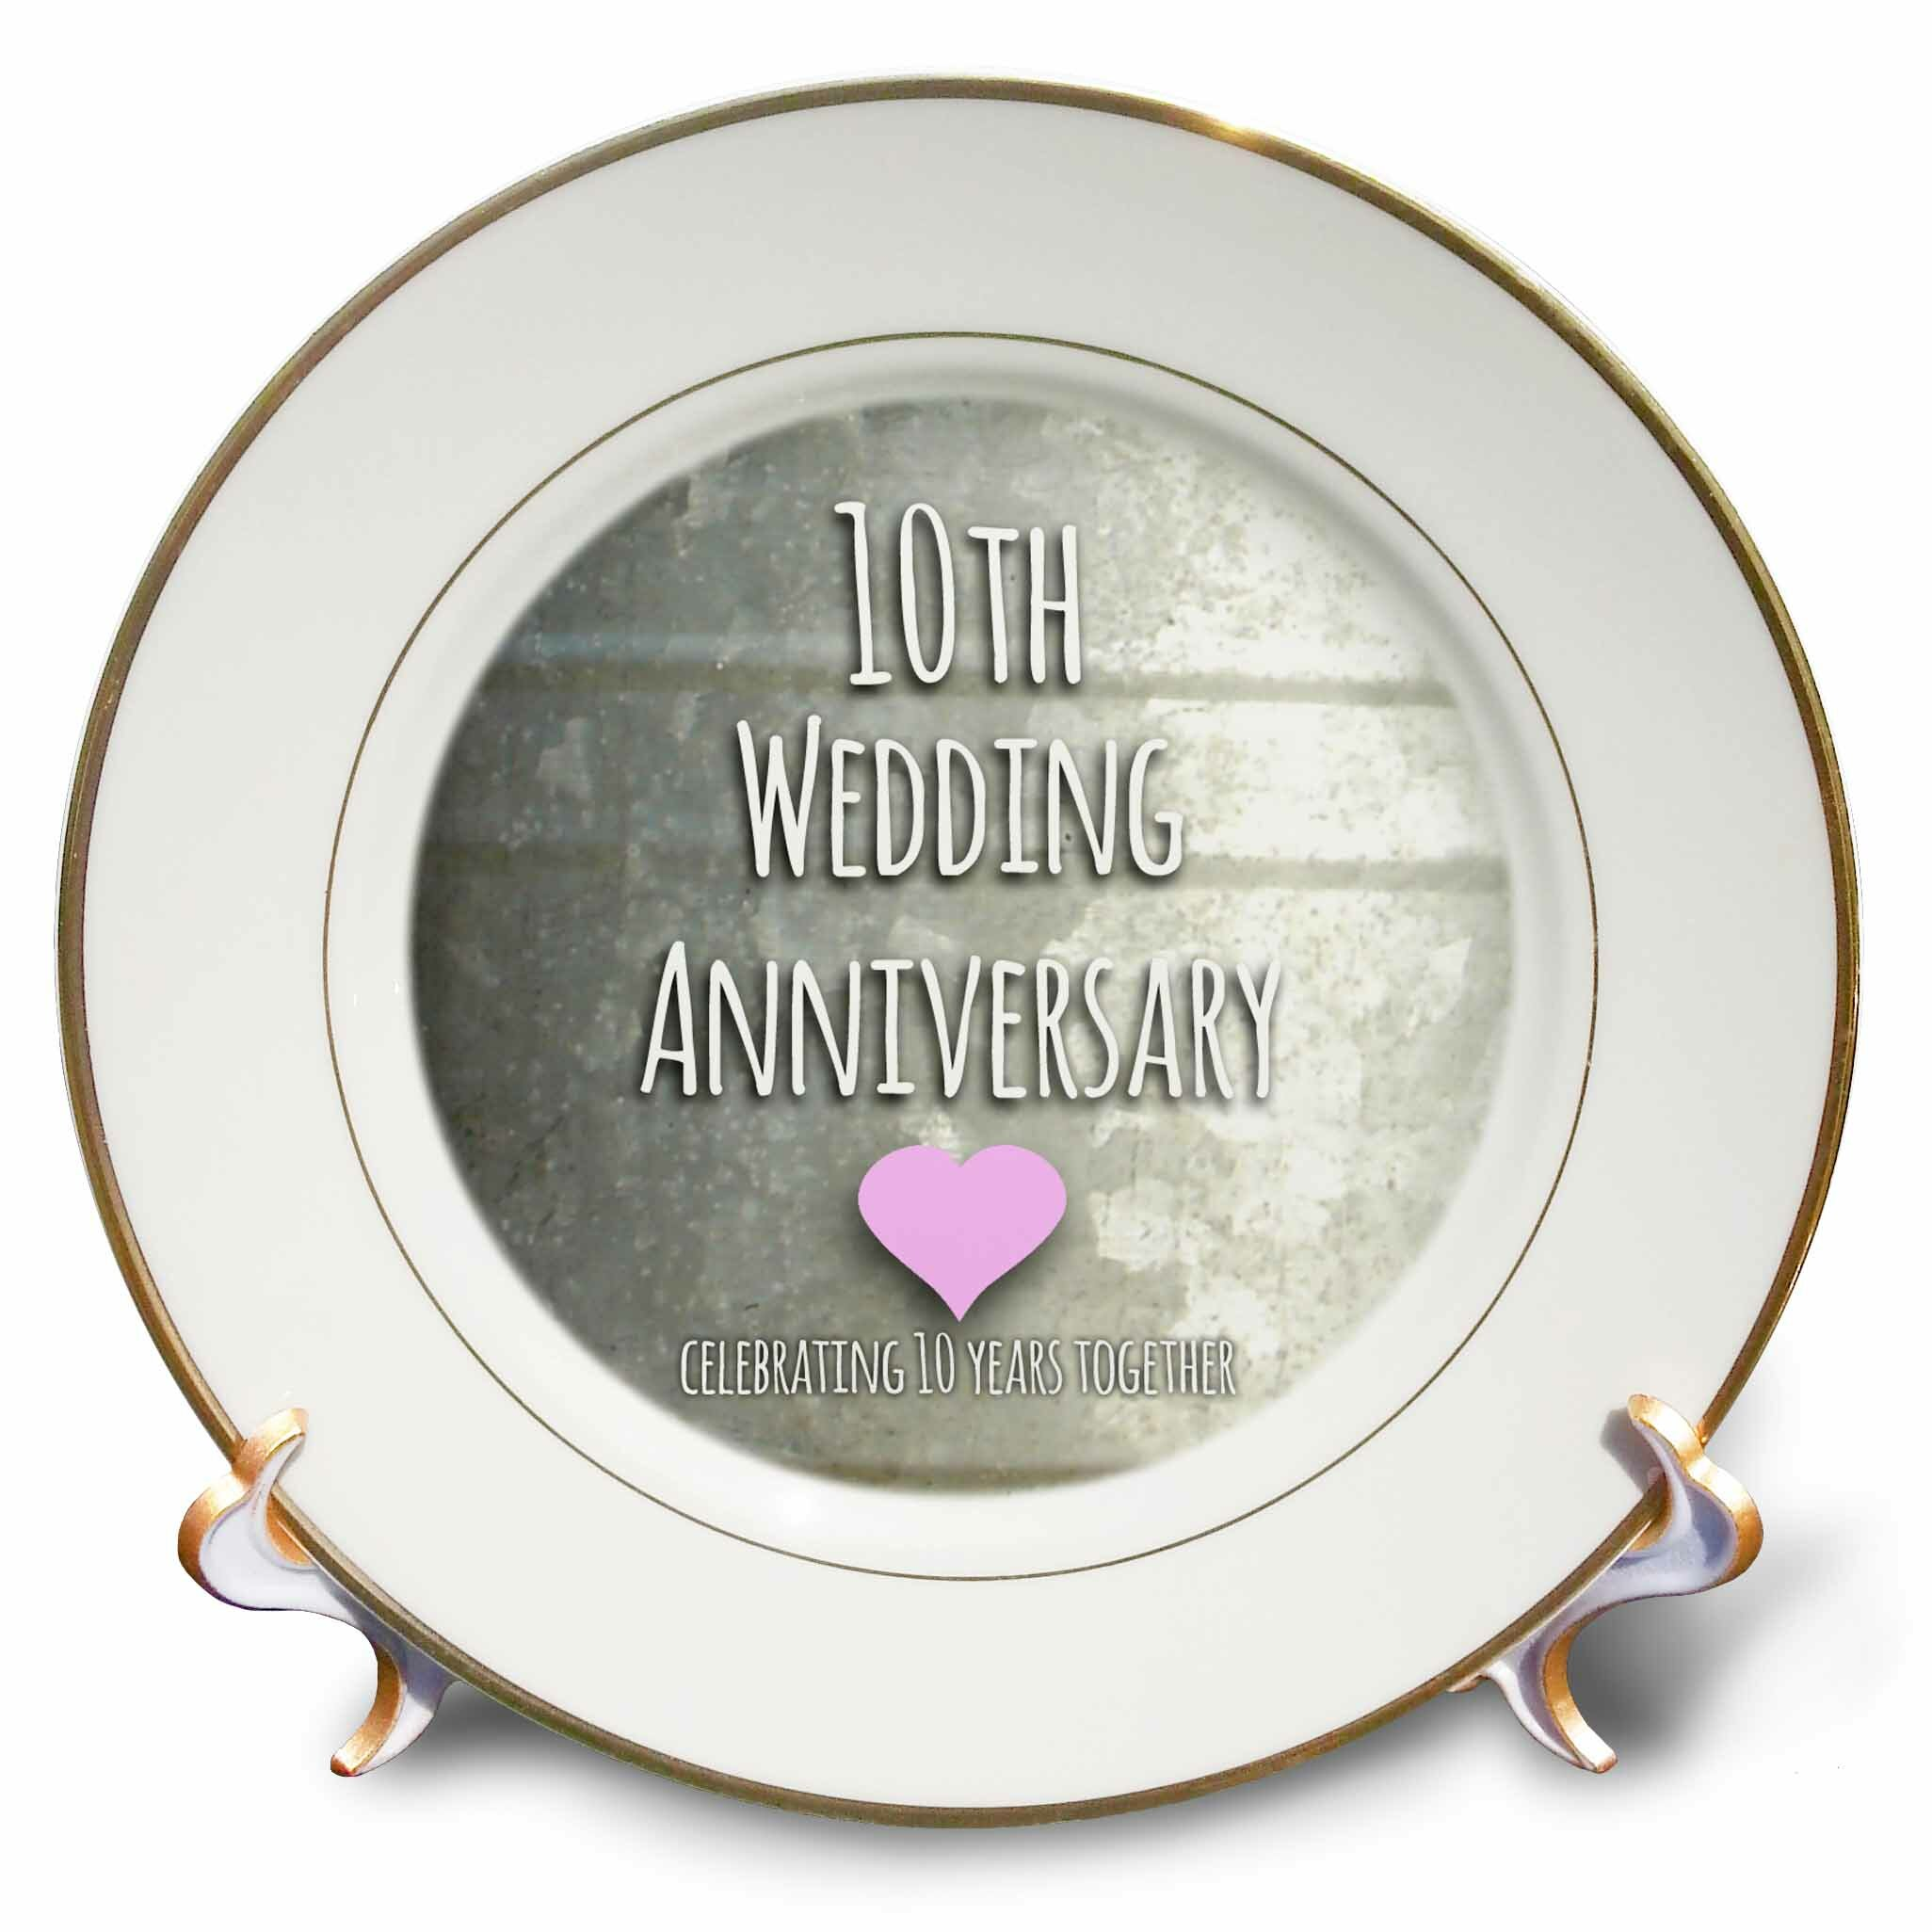 East Urban Home 10th Wedding Anniversary Gift Tin Celebrating 10 Years Together Tenth Anniversaries Porcelain Decorative Plate Wayfair